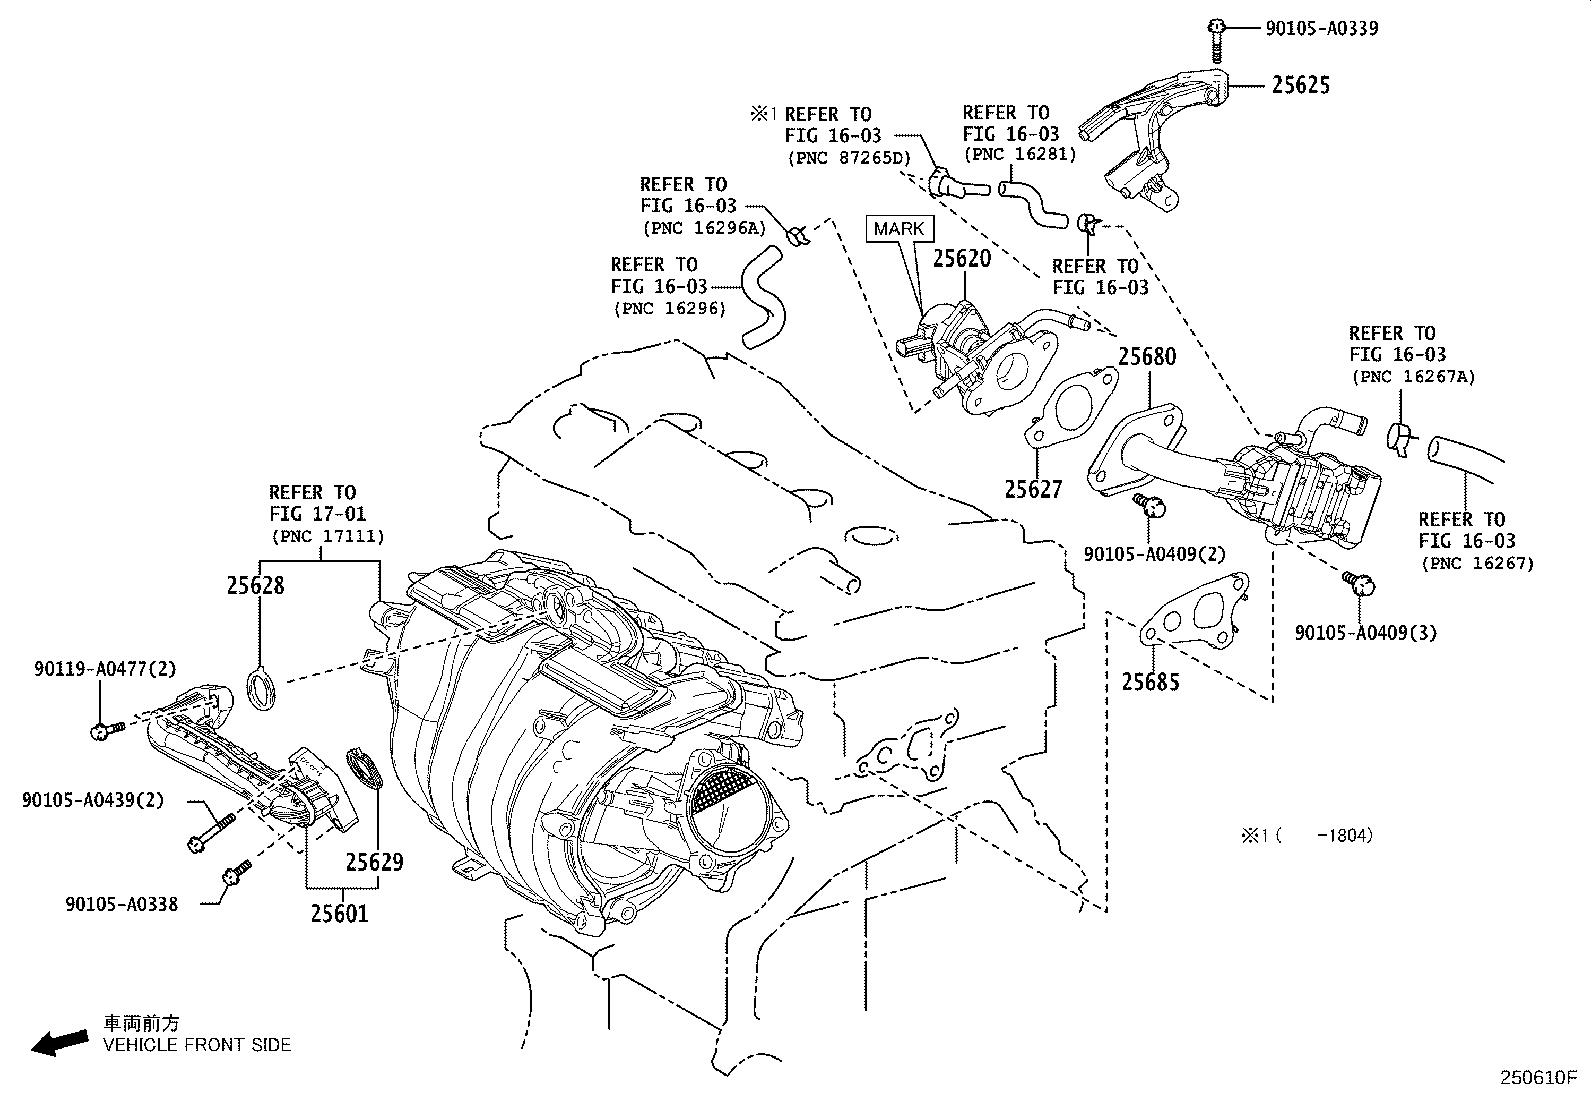 Toyota Camry Egr cooler. Cools exhaust gas before it